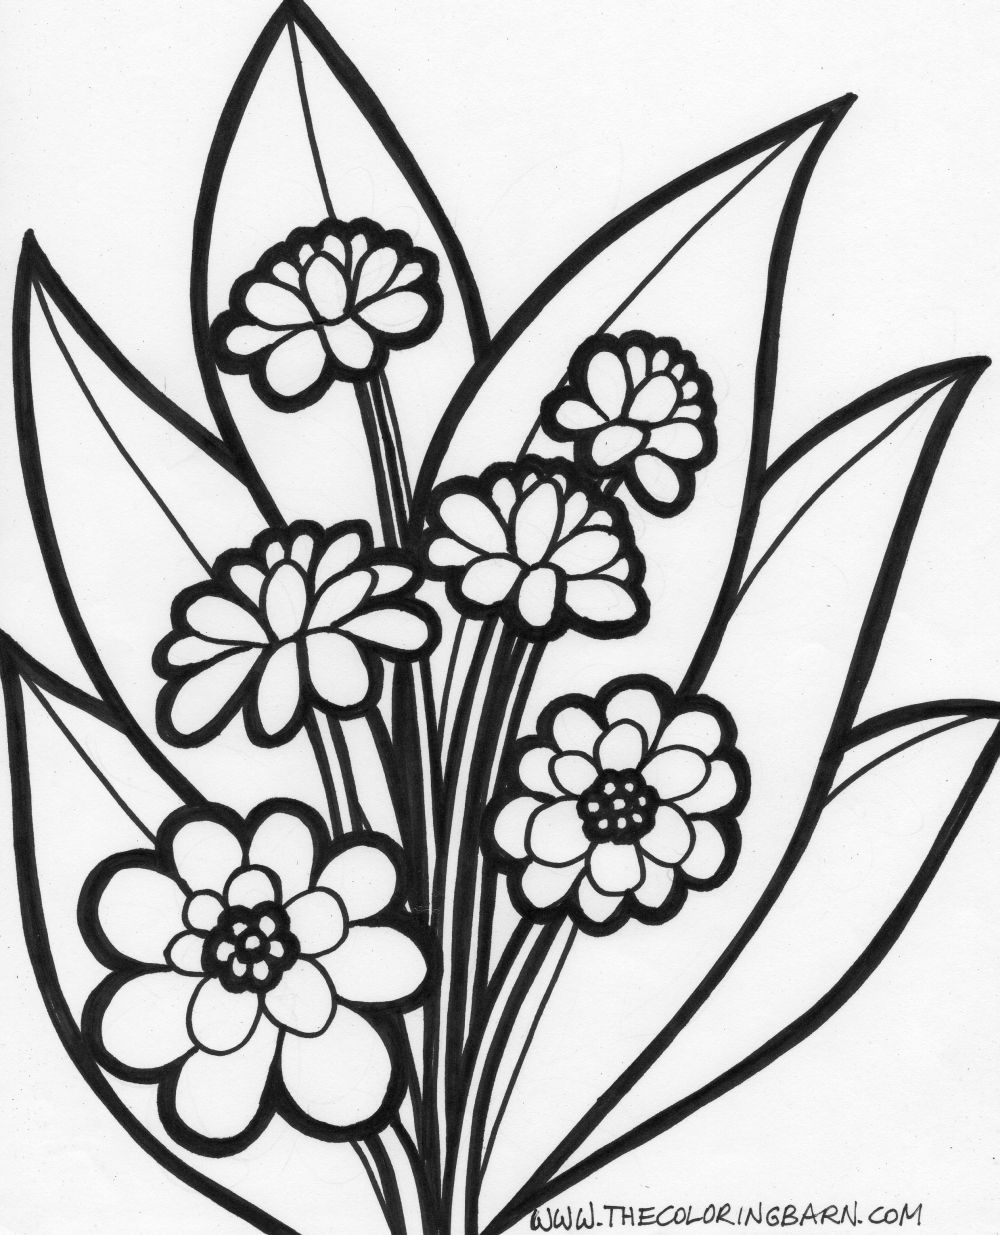 Flowers Coloring Pages Color Printing Flower Coloring Pages Free 25 Free Printable Coloring Pages For Kids Colouring Pages Coloring Pages Of Cars Barbie Coloring Pages